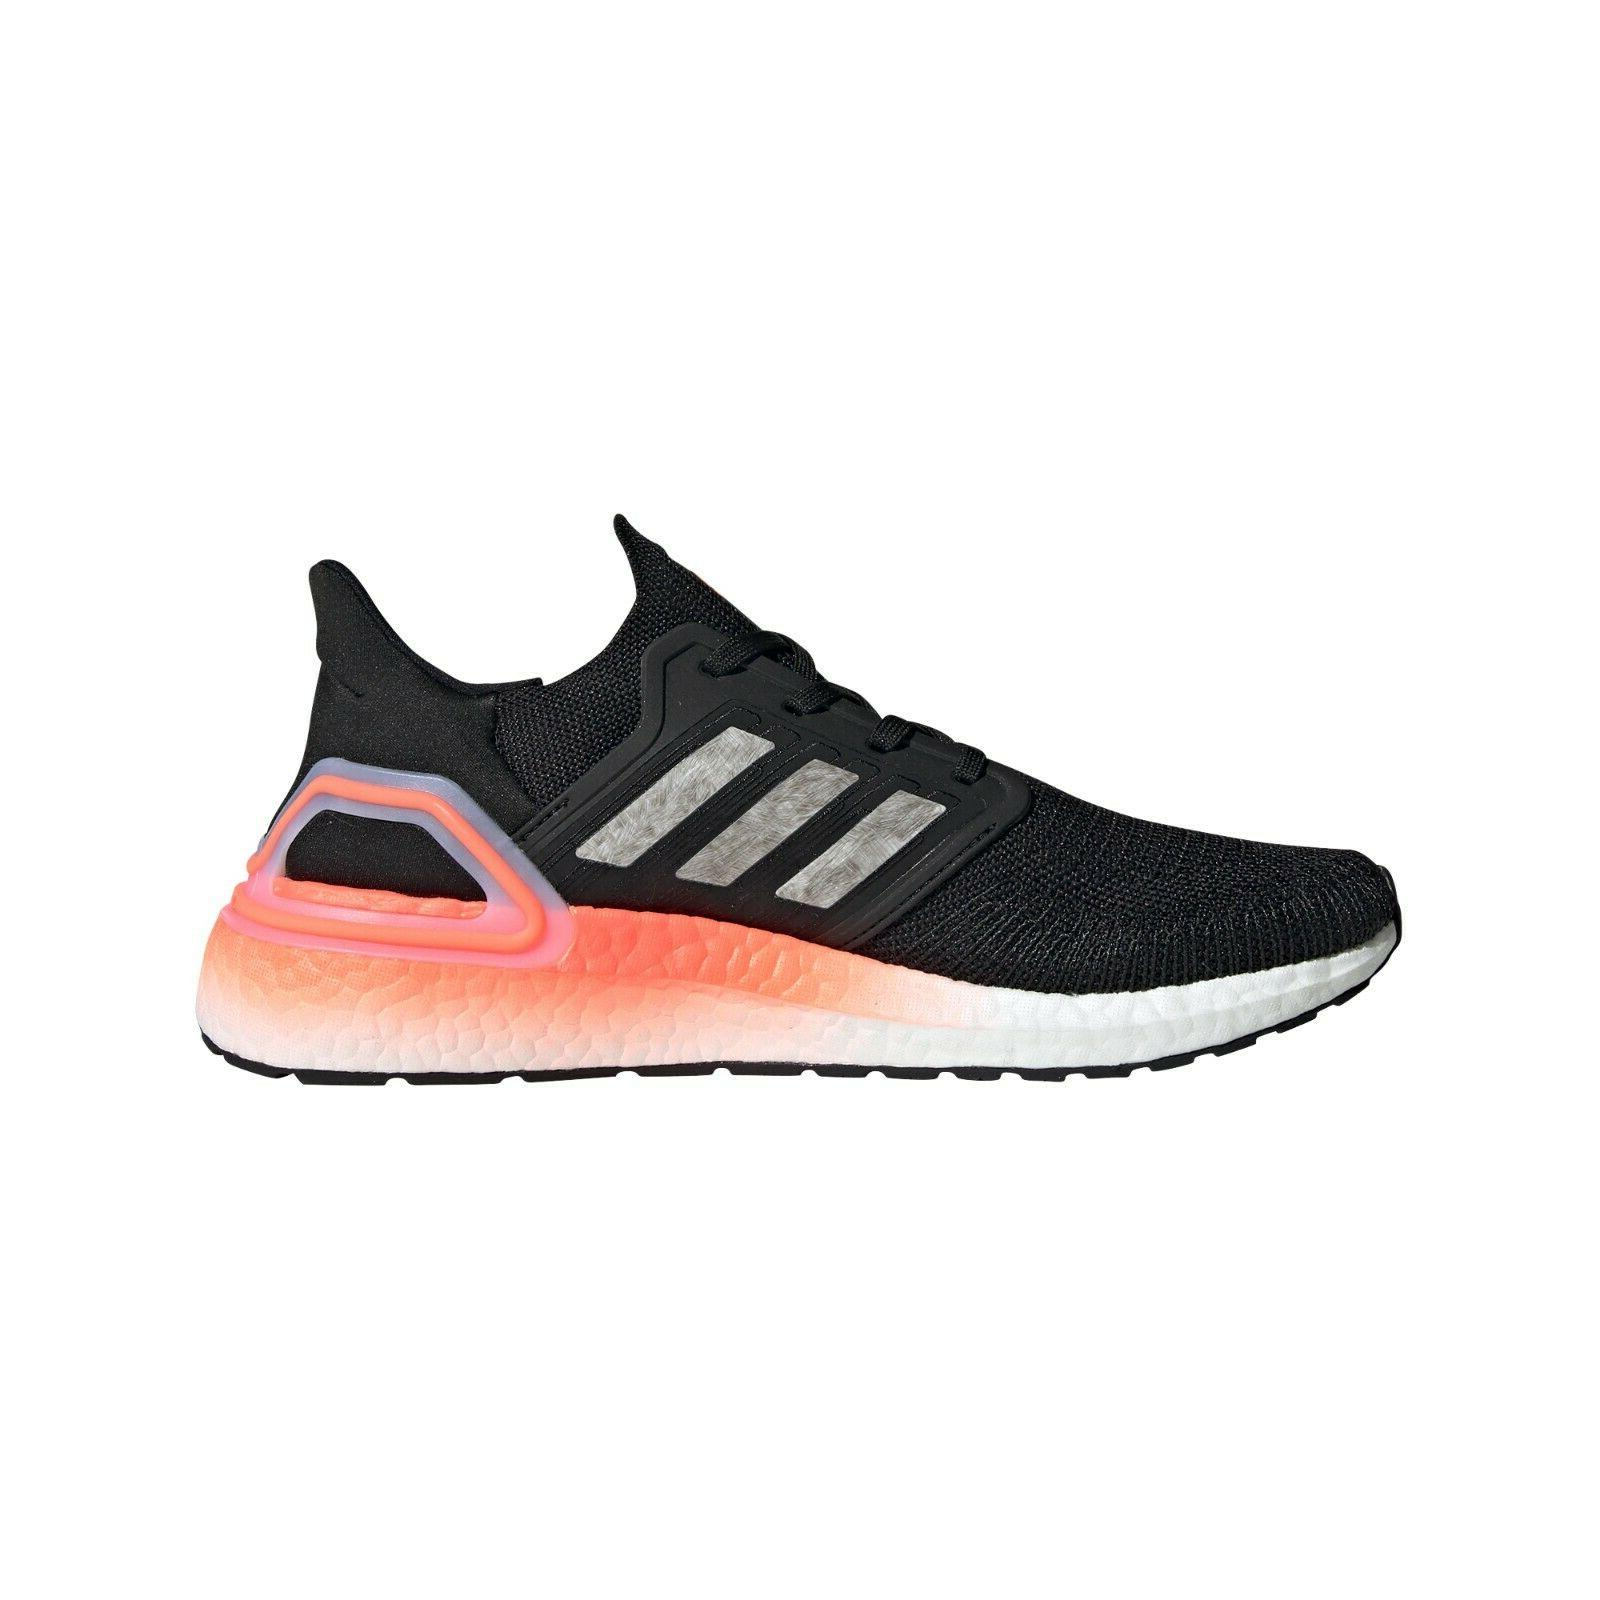 Adidas Ultraboost Mens Running Shoes Athletic Sneaker